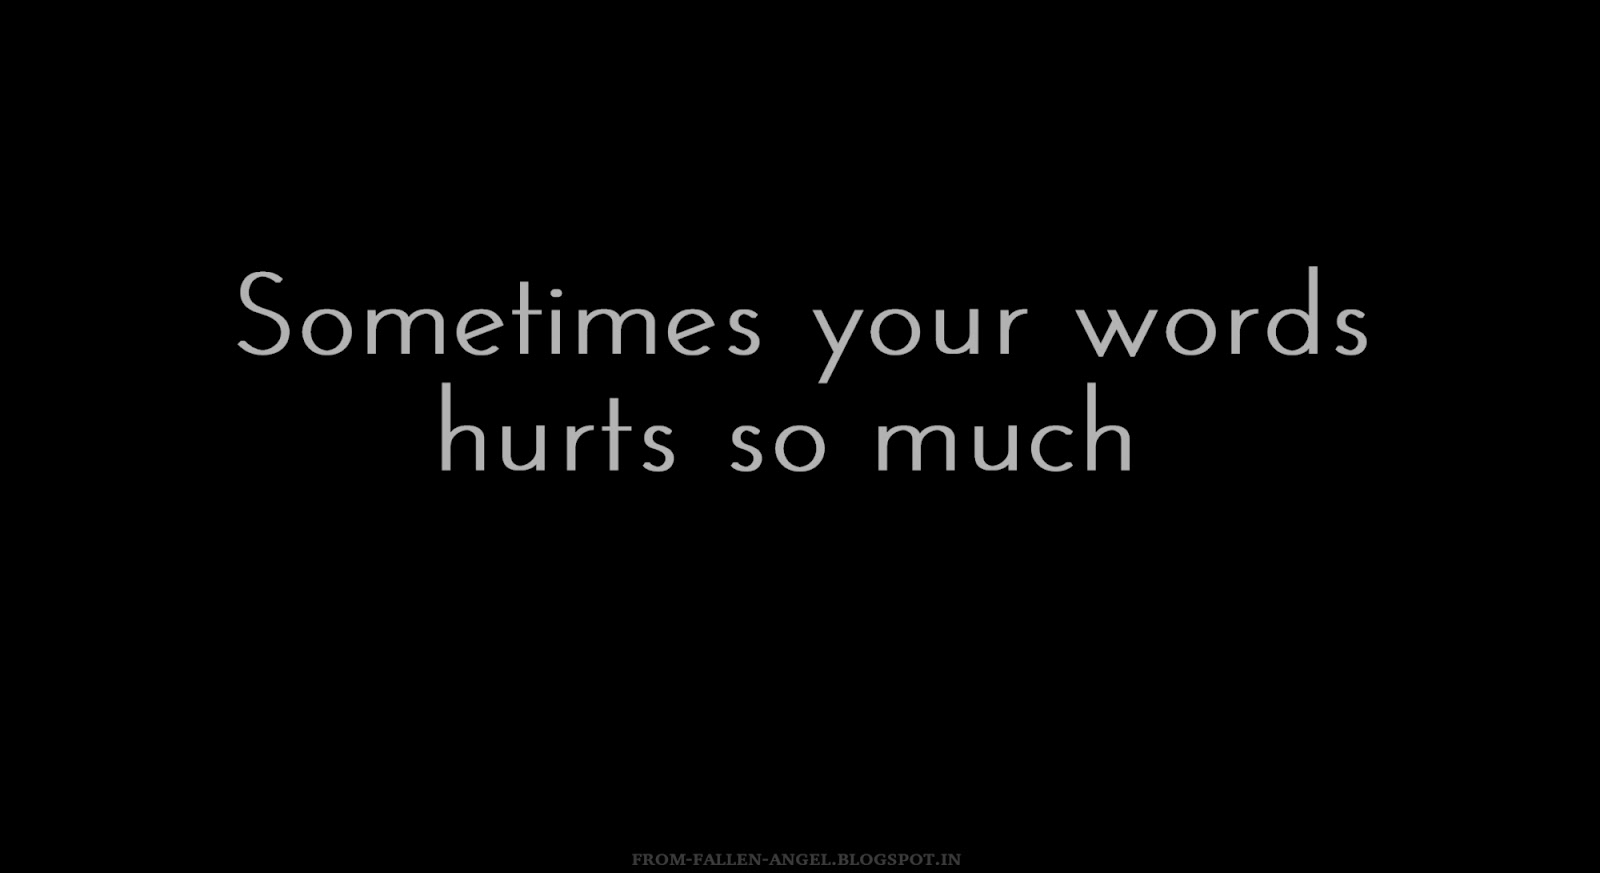 Sometimes your words hurts so much